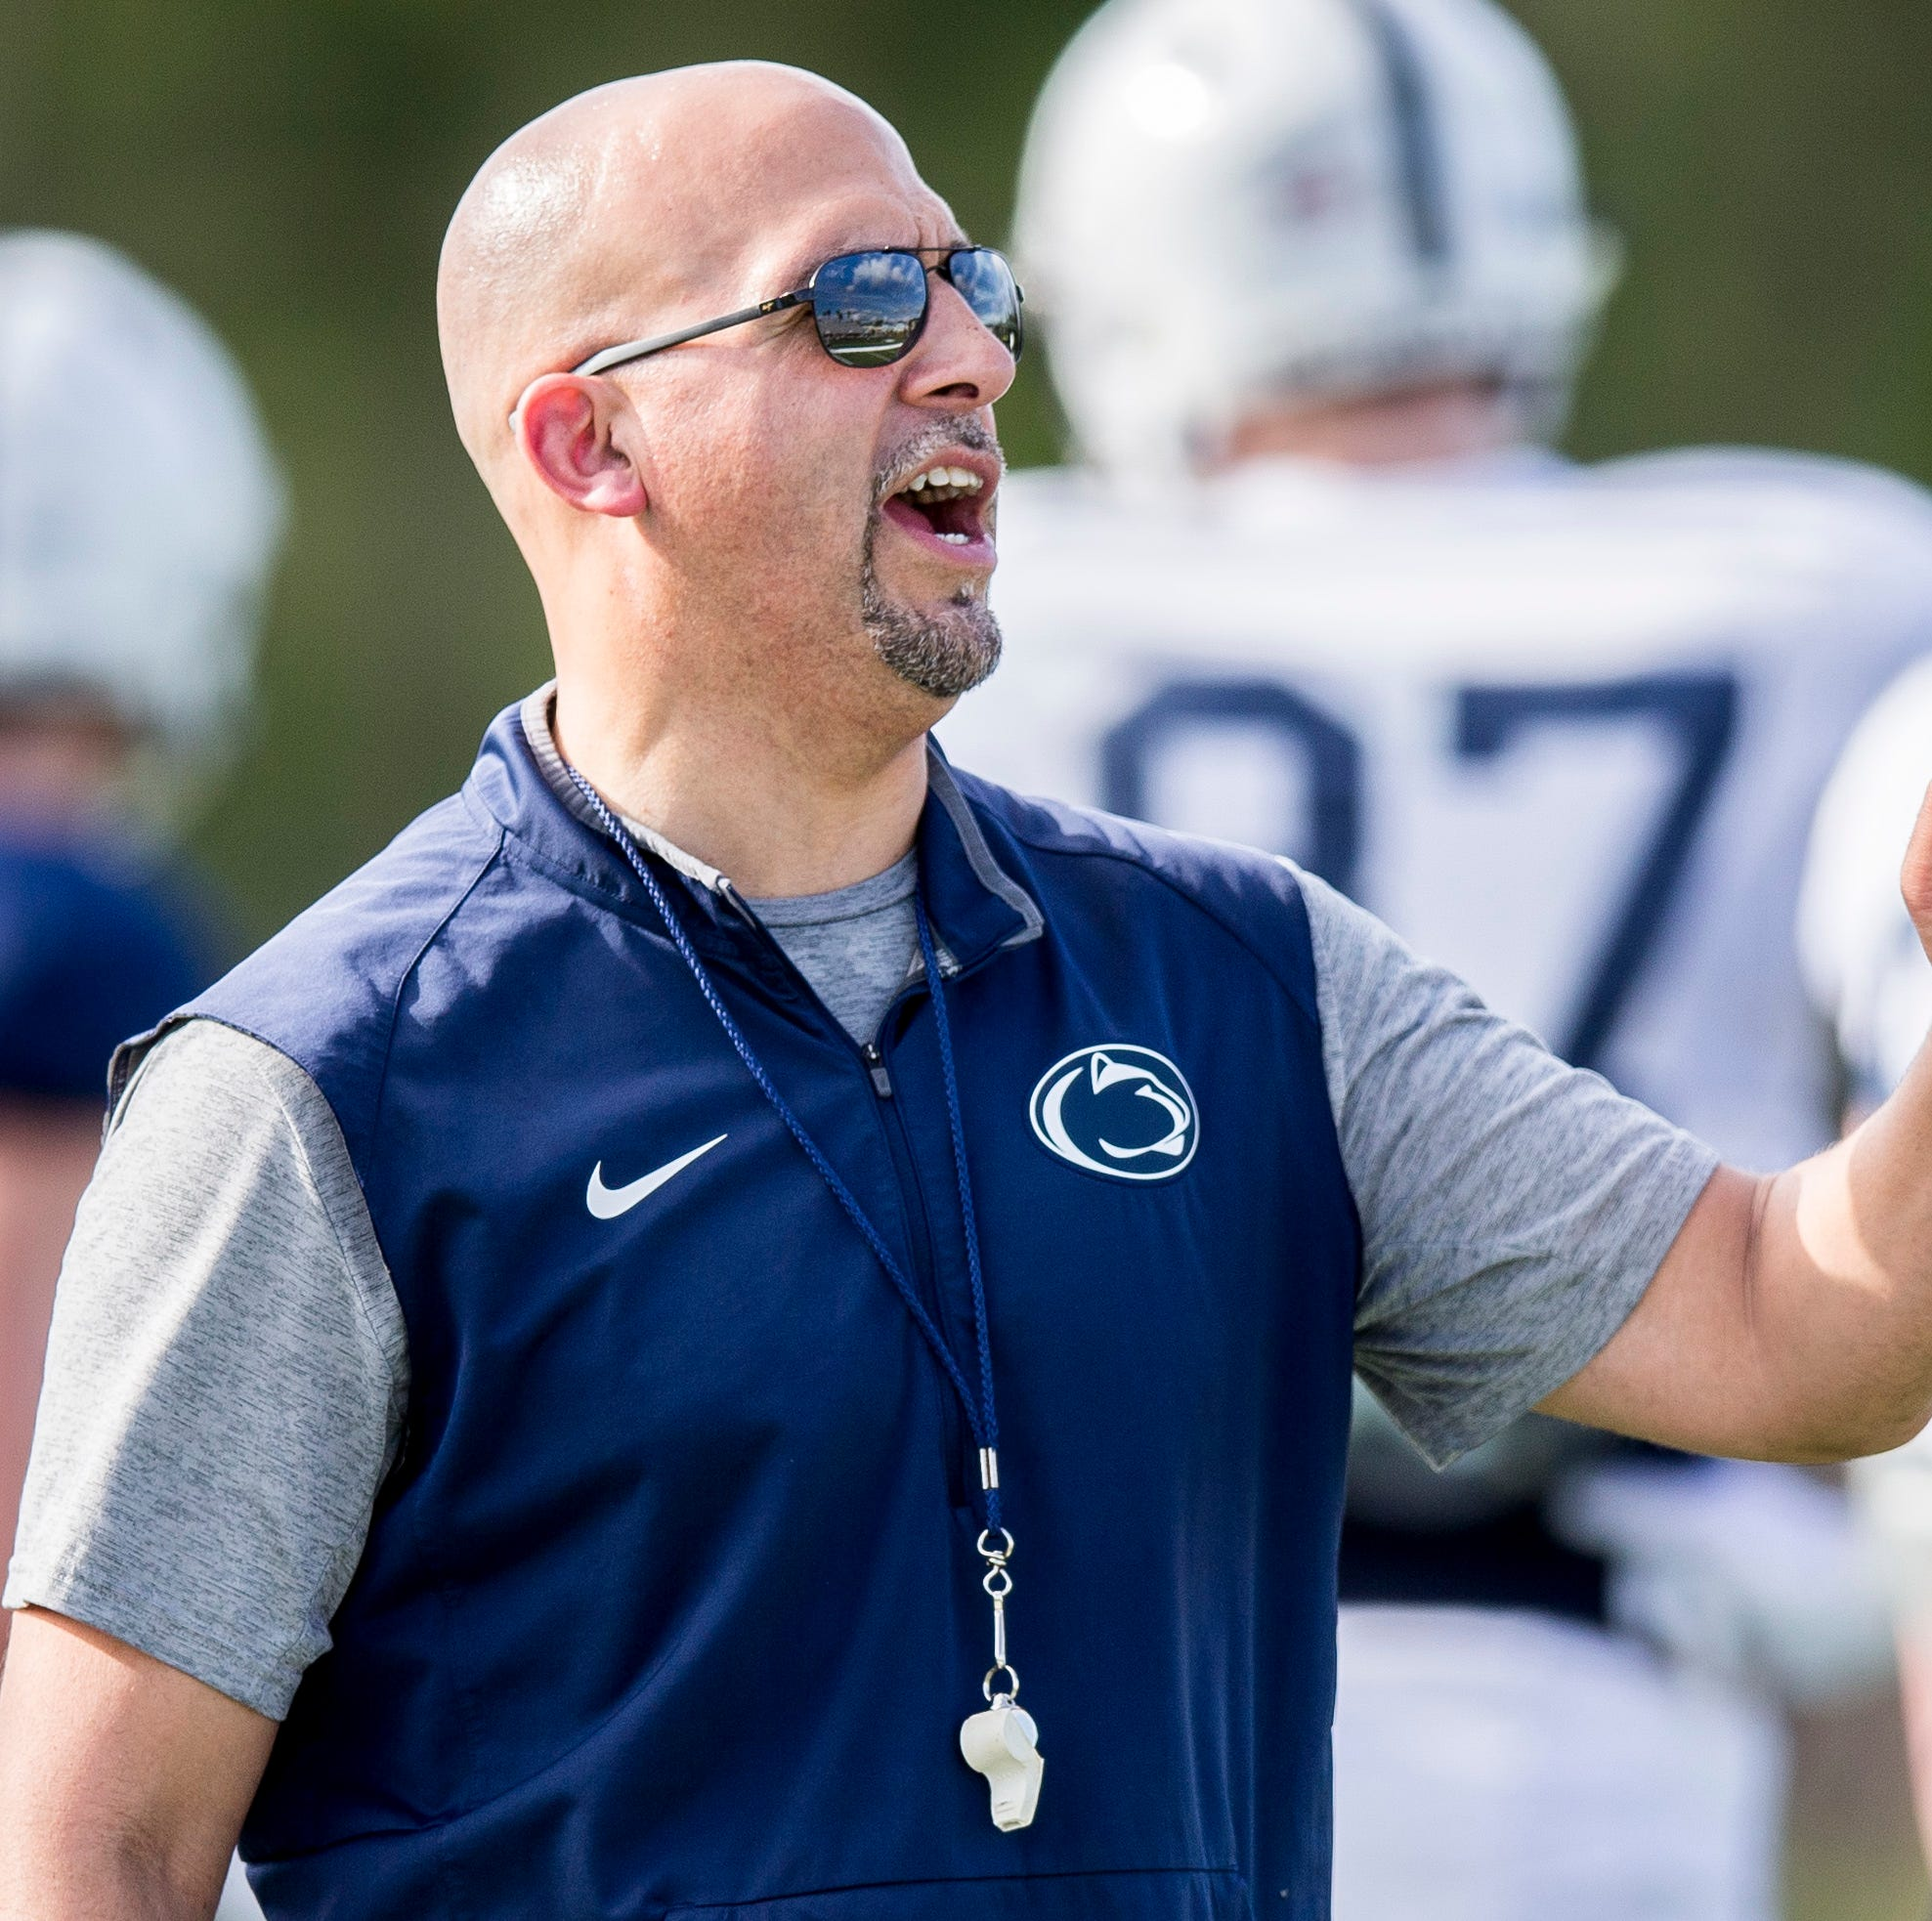 Penn State recruiting: James Franklin's best effort could be No. 1 in Big Ten